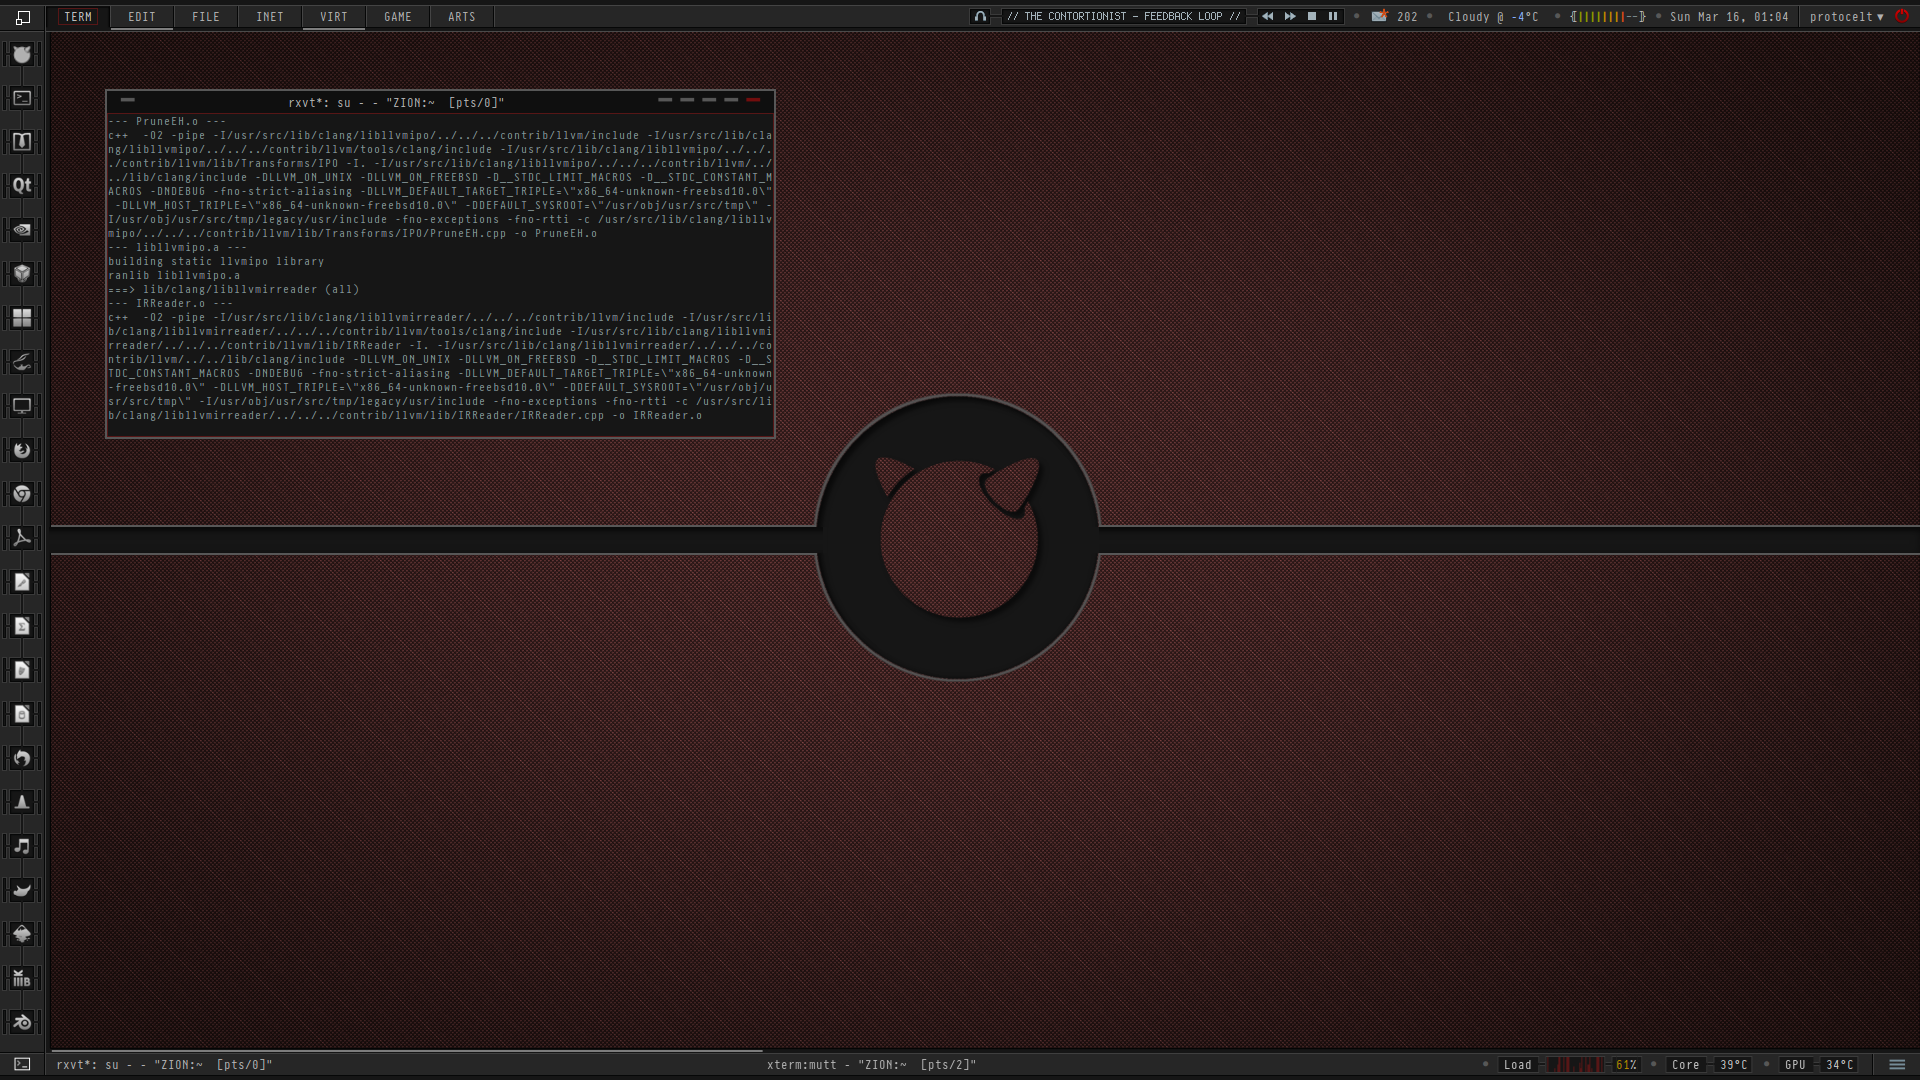 FreeBSD Screen Shots | Page 30 | The FreeBSD Forums